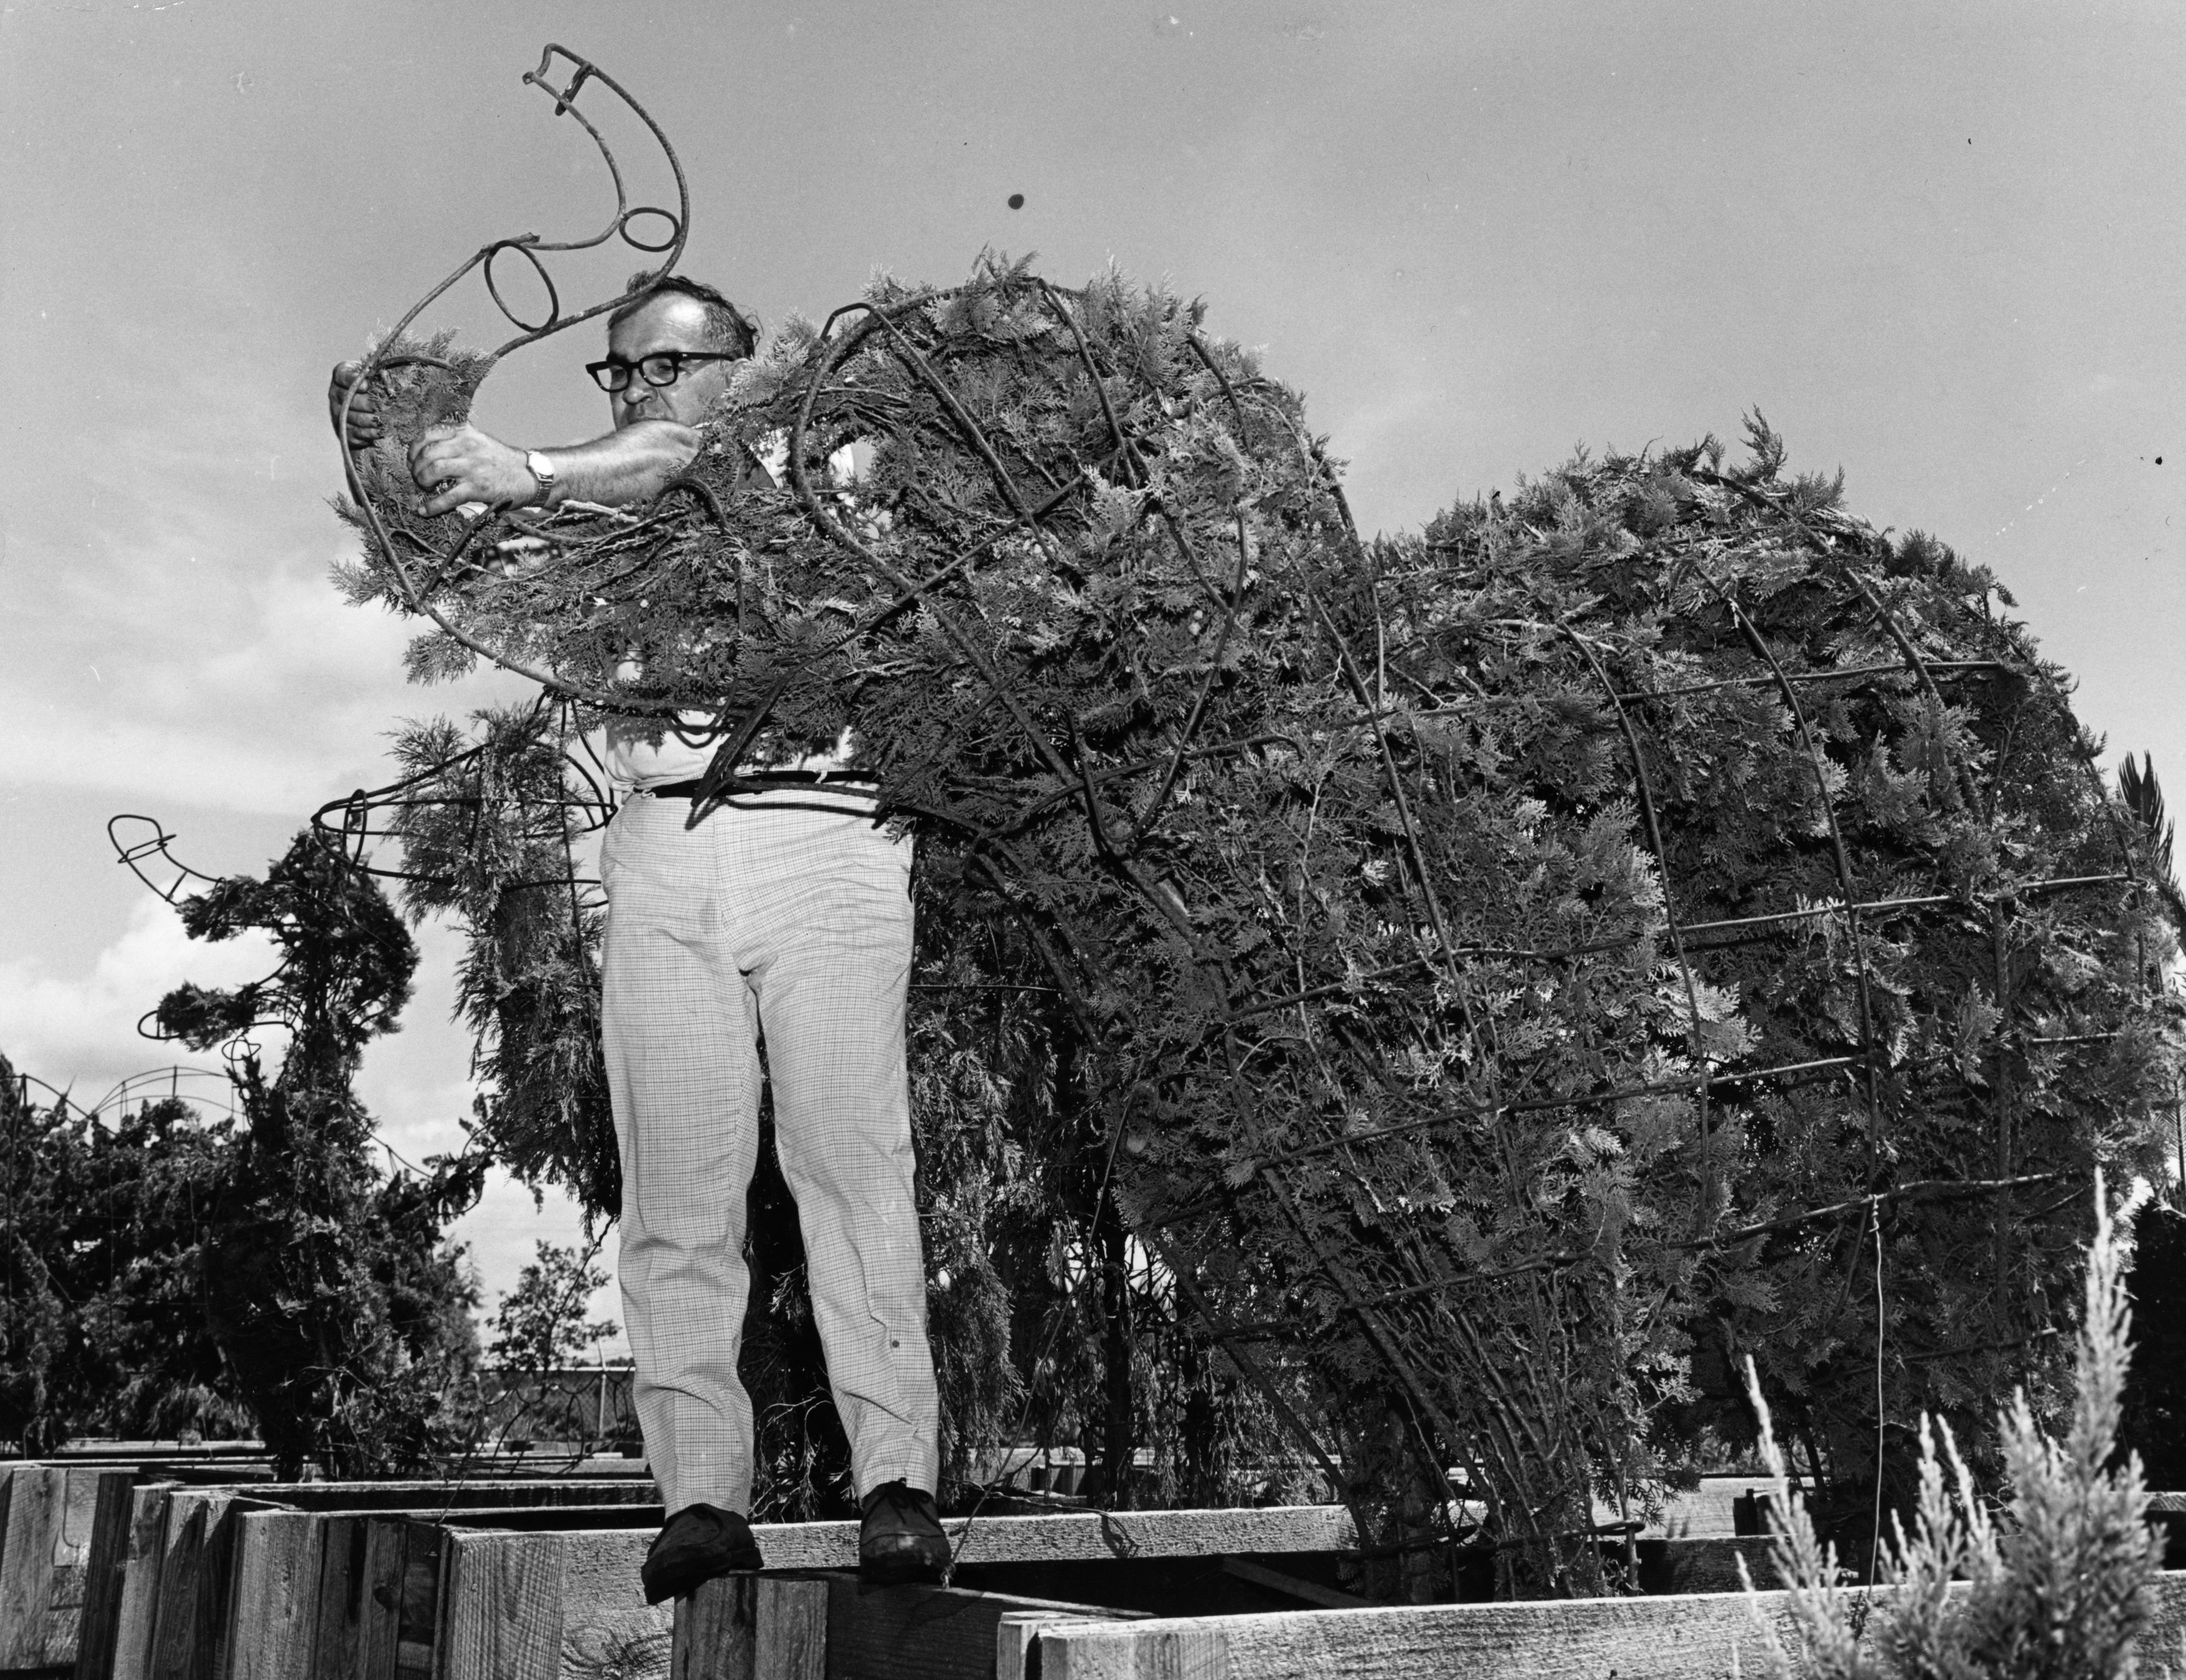 Slide 22 of 33: 31st October 1969:  Landscape artist Charlie Sepulveda creating life size topiary Disney characters for the Walt Disney World entertainment centre in Orlando, Florida  (Photo by Alan Band/Keystone/Getty Images)